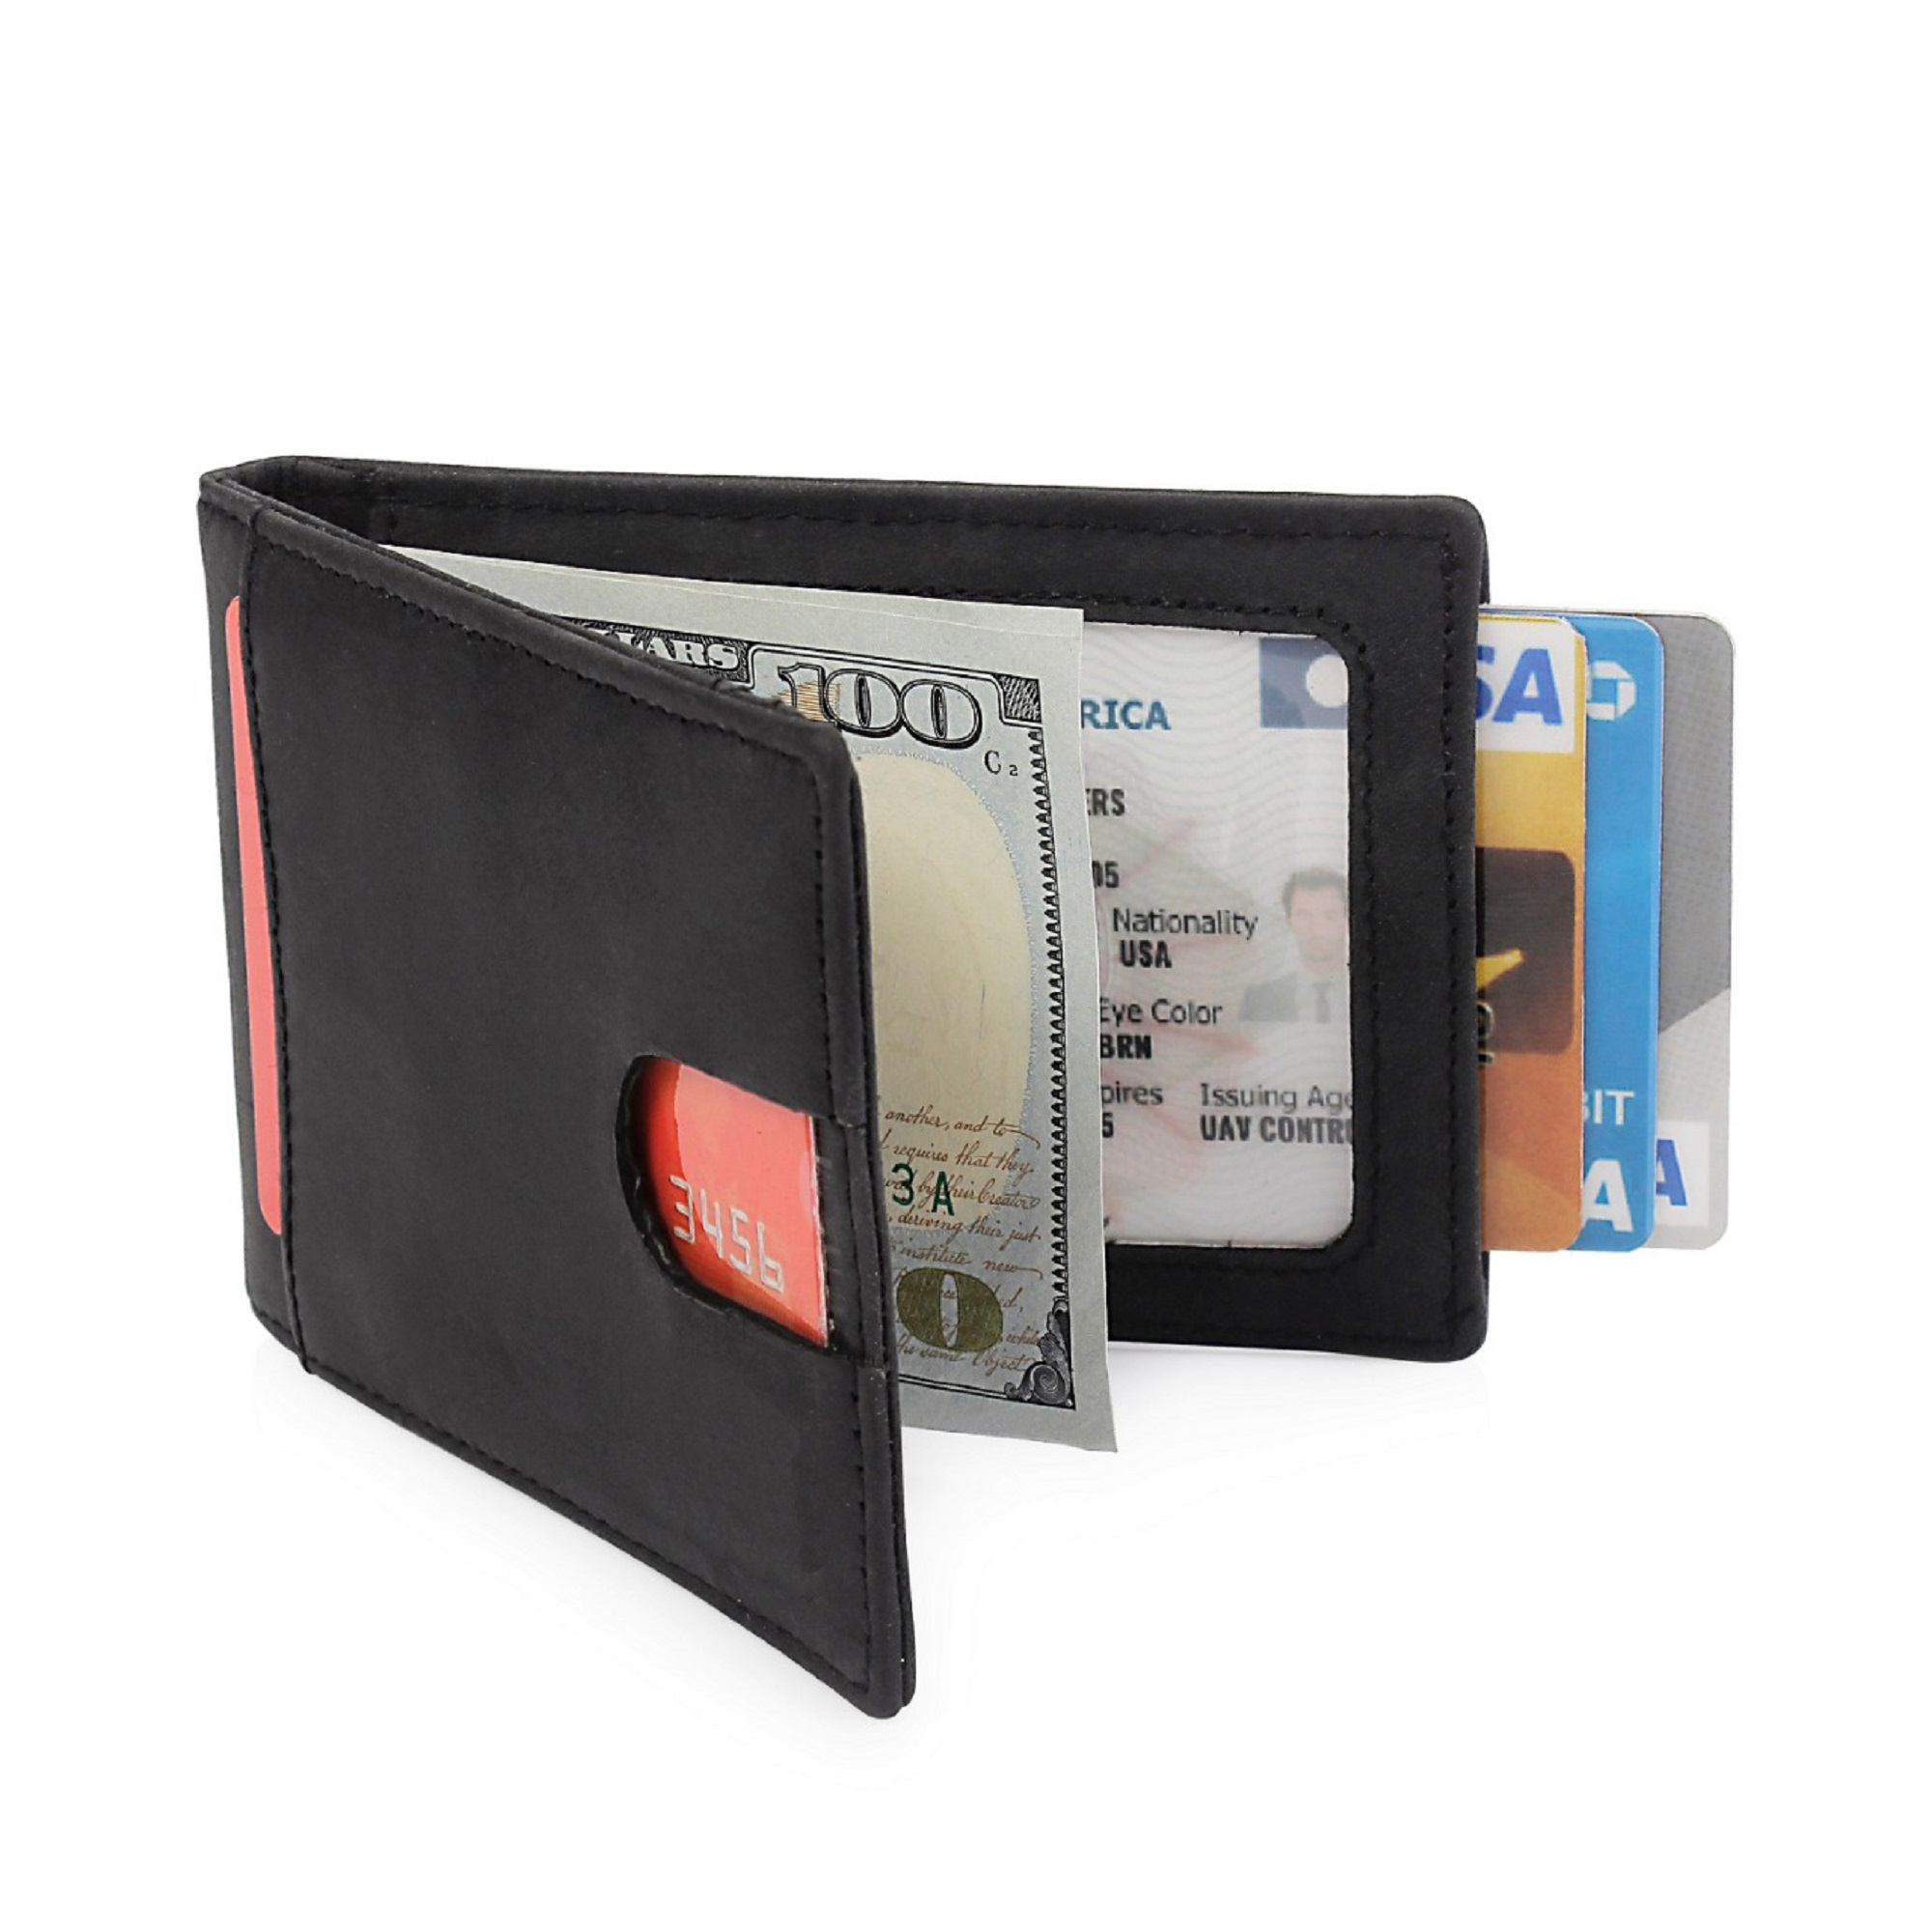 Leather Money Clip Wallet Manufacturers In United-arab-emirates, Money Clip Wallet Suppliers In United-arab-emirates, Money Clip Wallet Wholesalers In United-arab-emirates, Money Clip Wallet Traders In United-arab-emirates